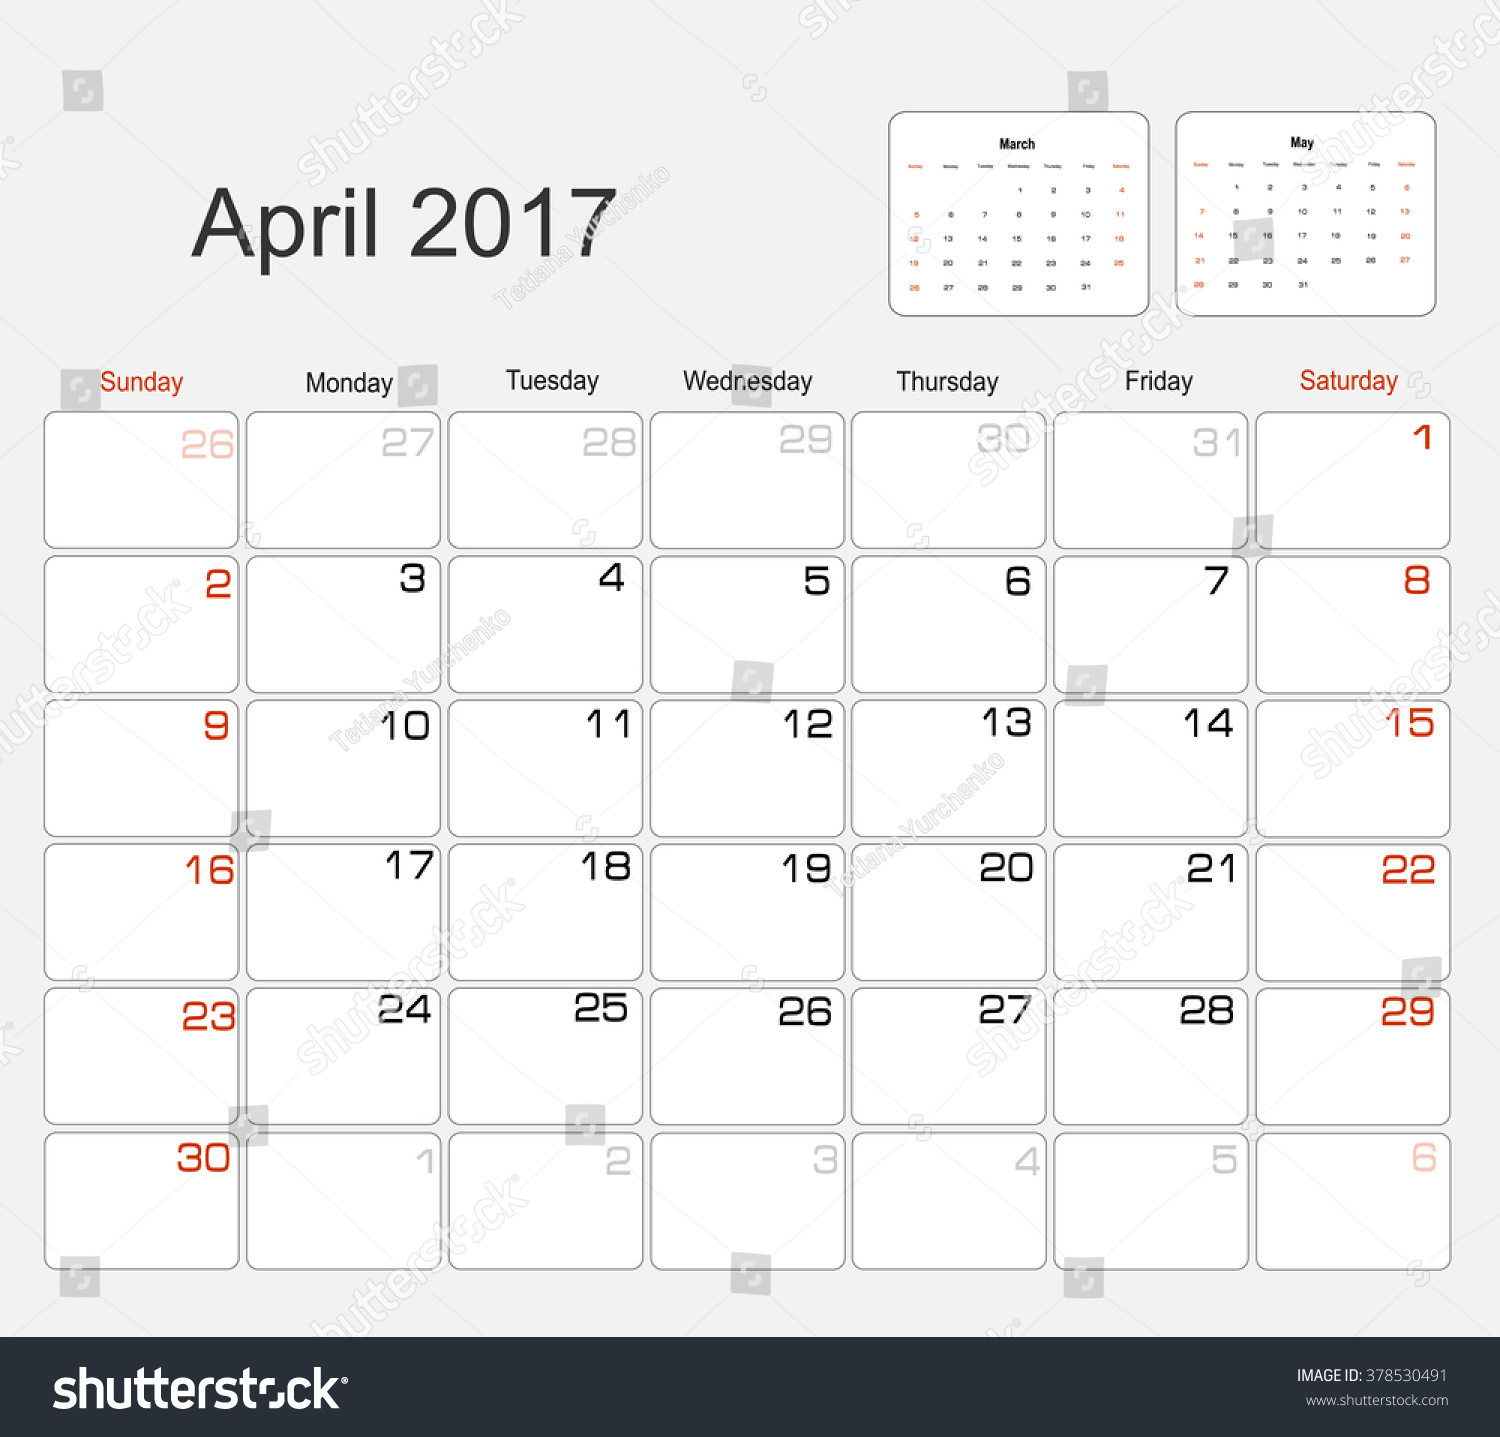 Calendar April Vector : Vector planning calendar april stock